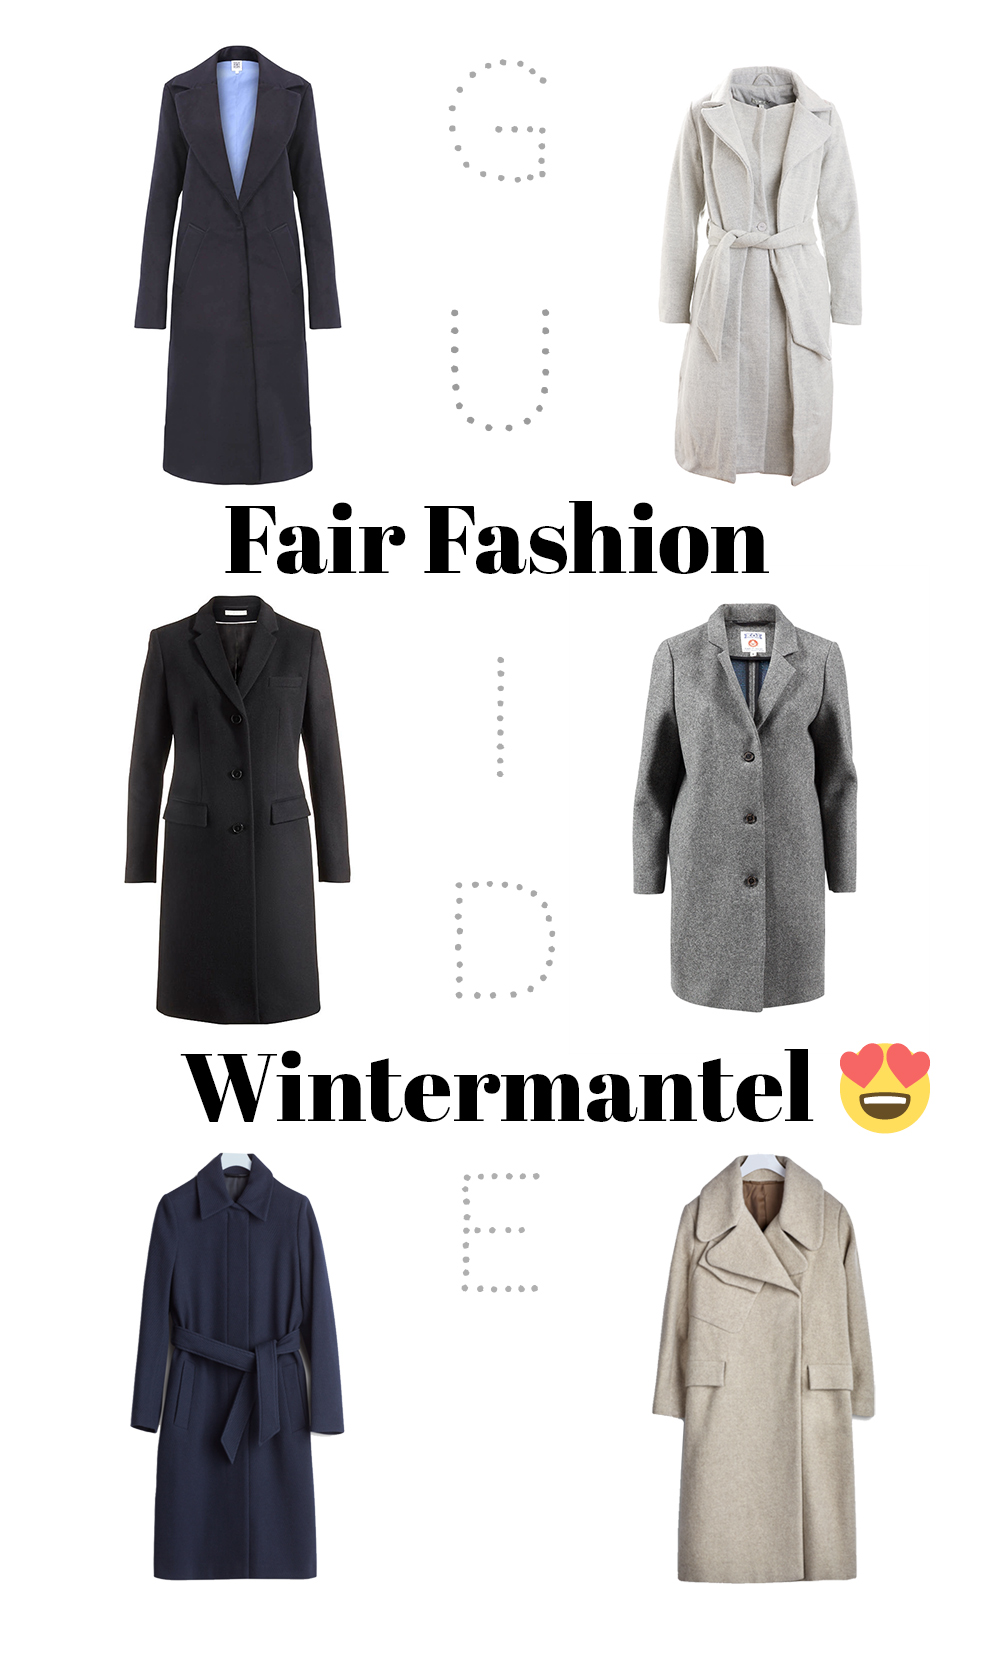 fair-fashion-mantel-wintermantel